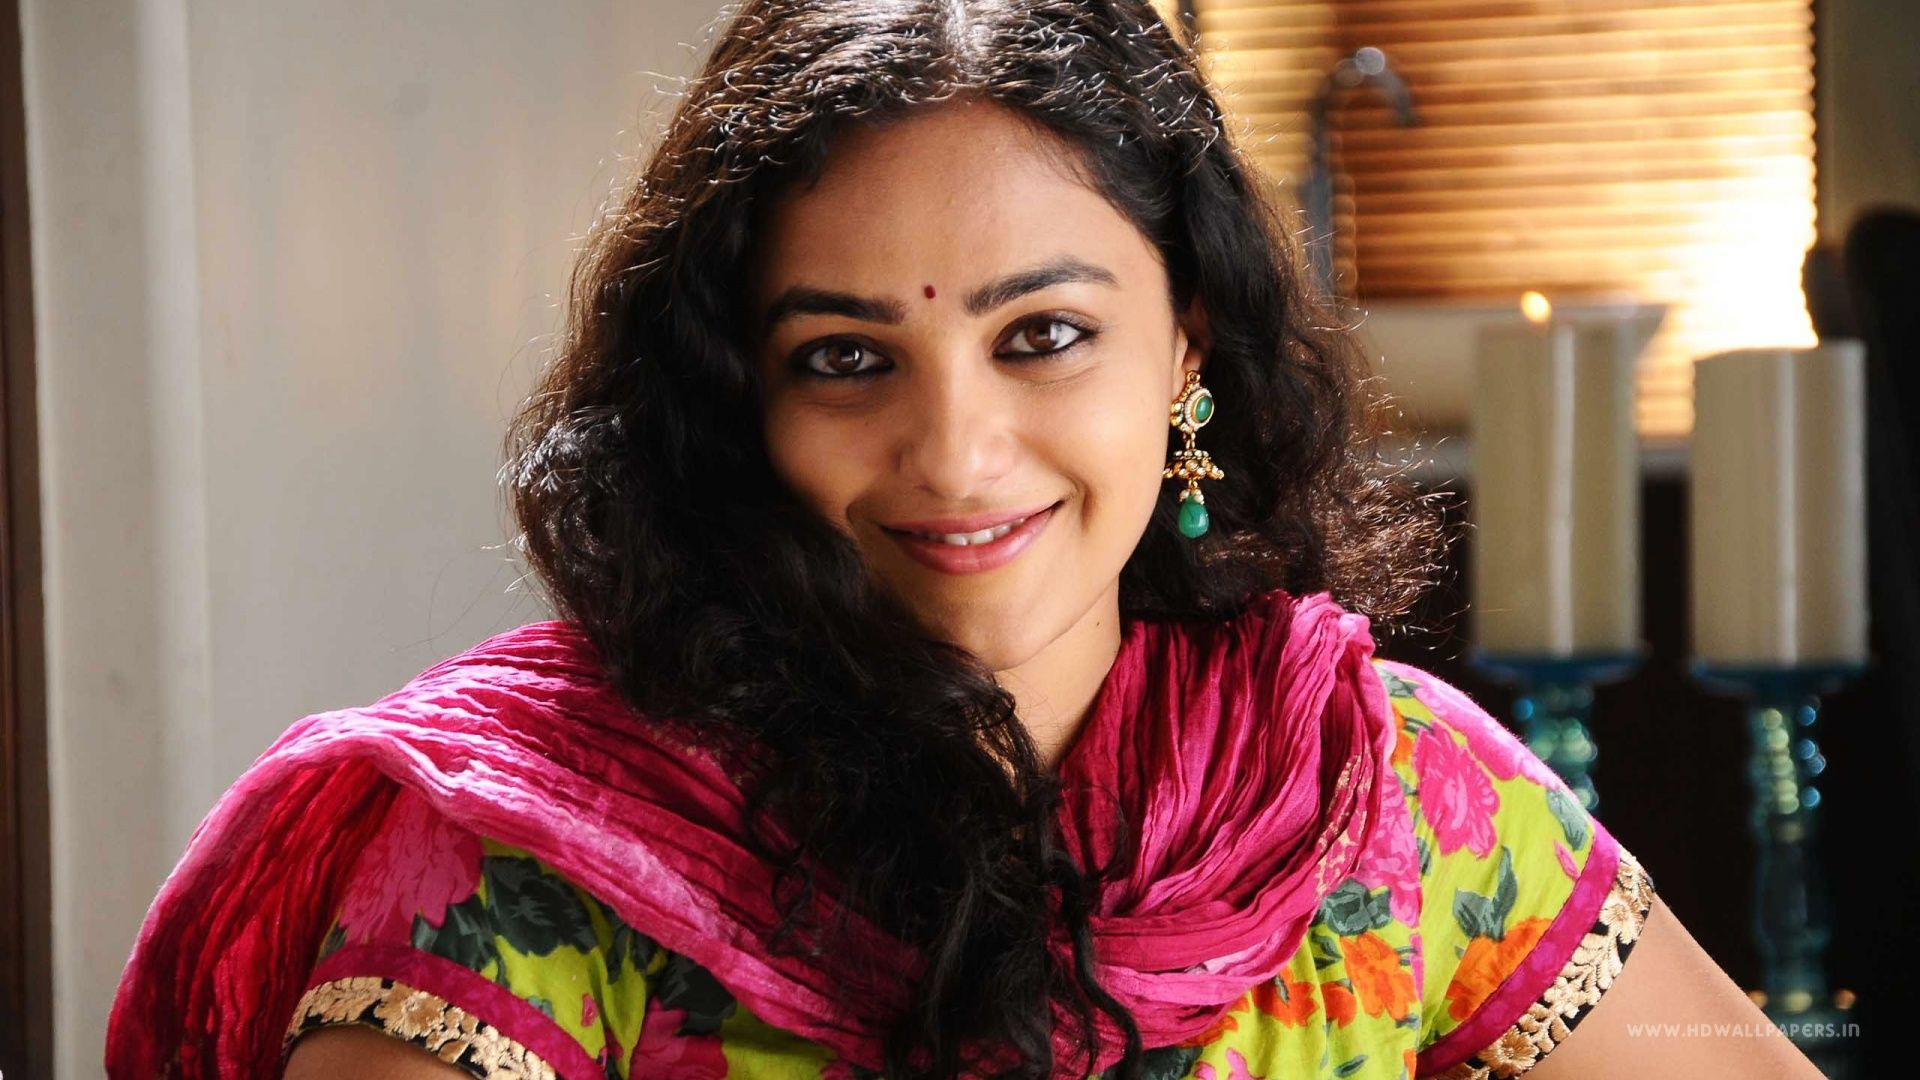 Malayalam movie actress hd wallpapers hd widescreen wallpapers malayalam movie actress hd wallpapers hd widescreen wallpapers altavistaventures Gallery